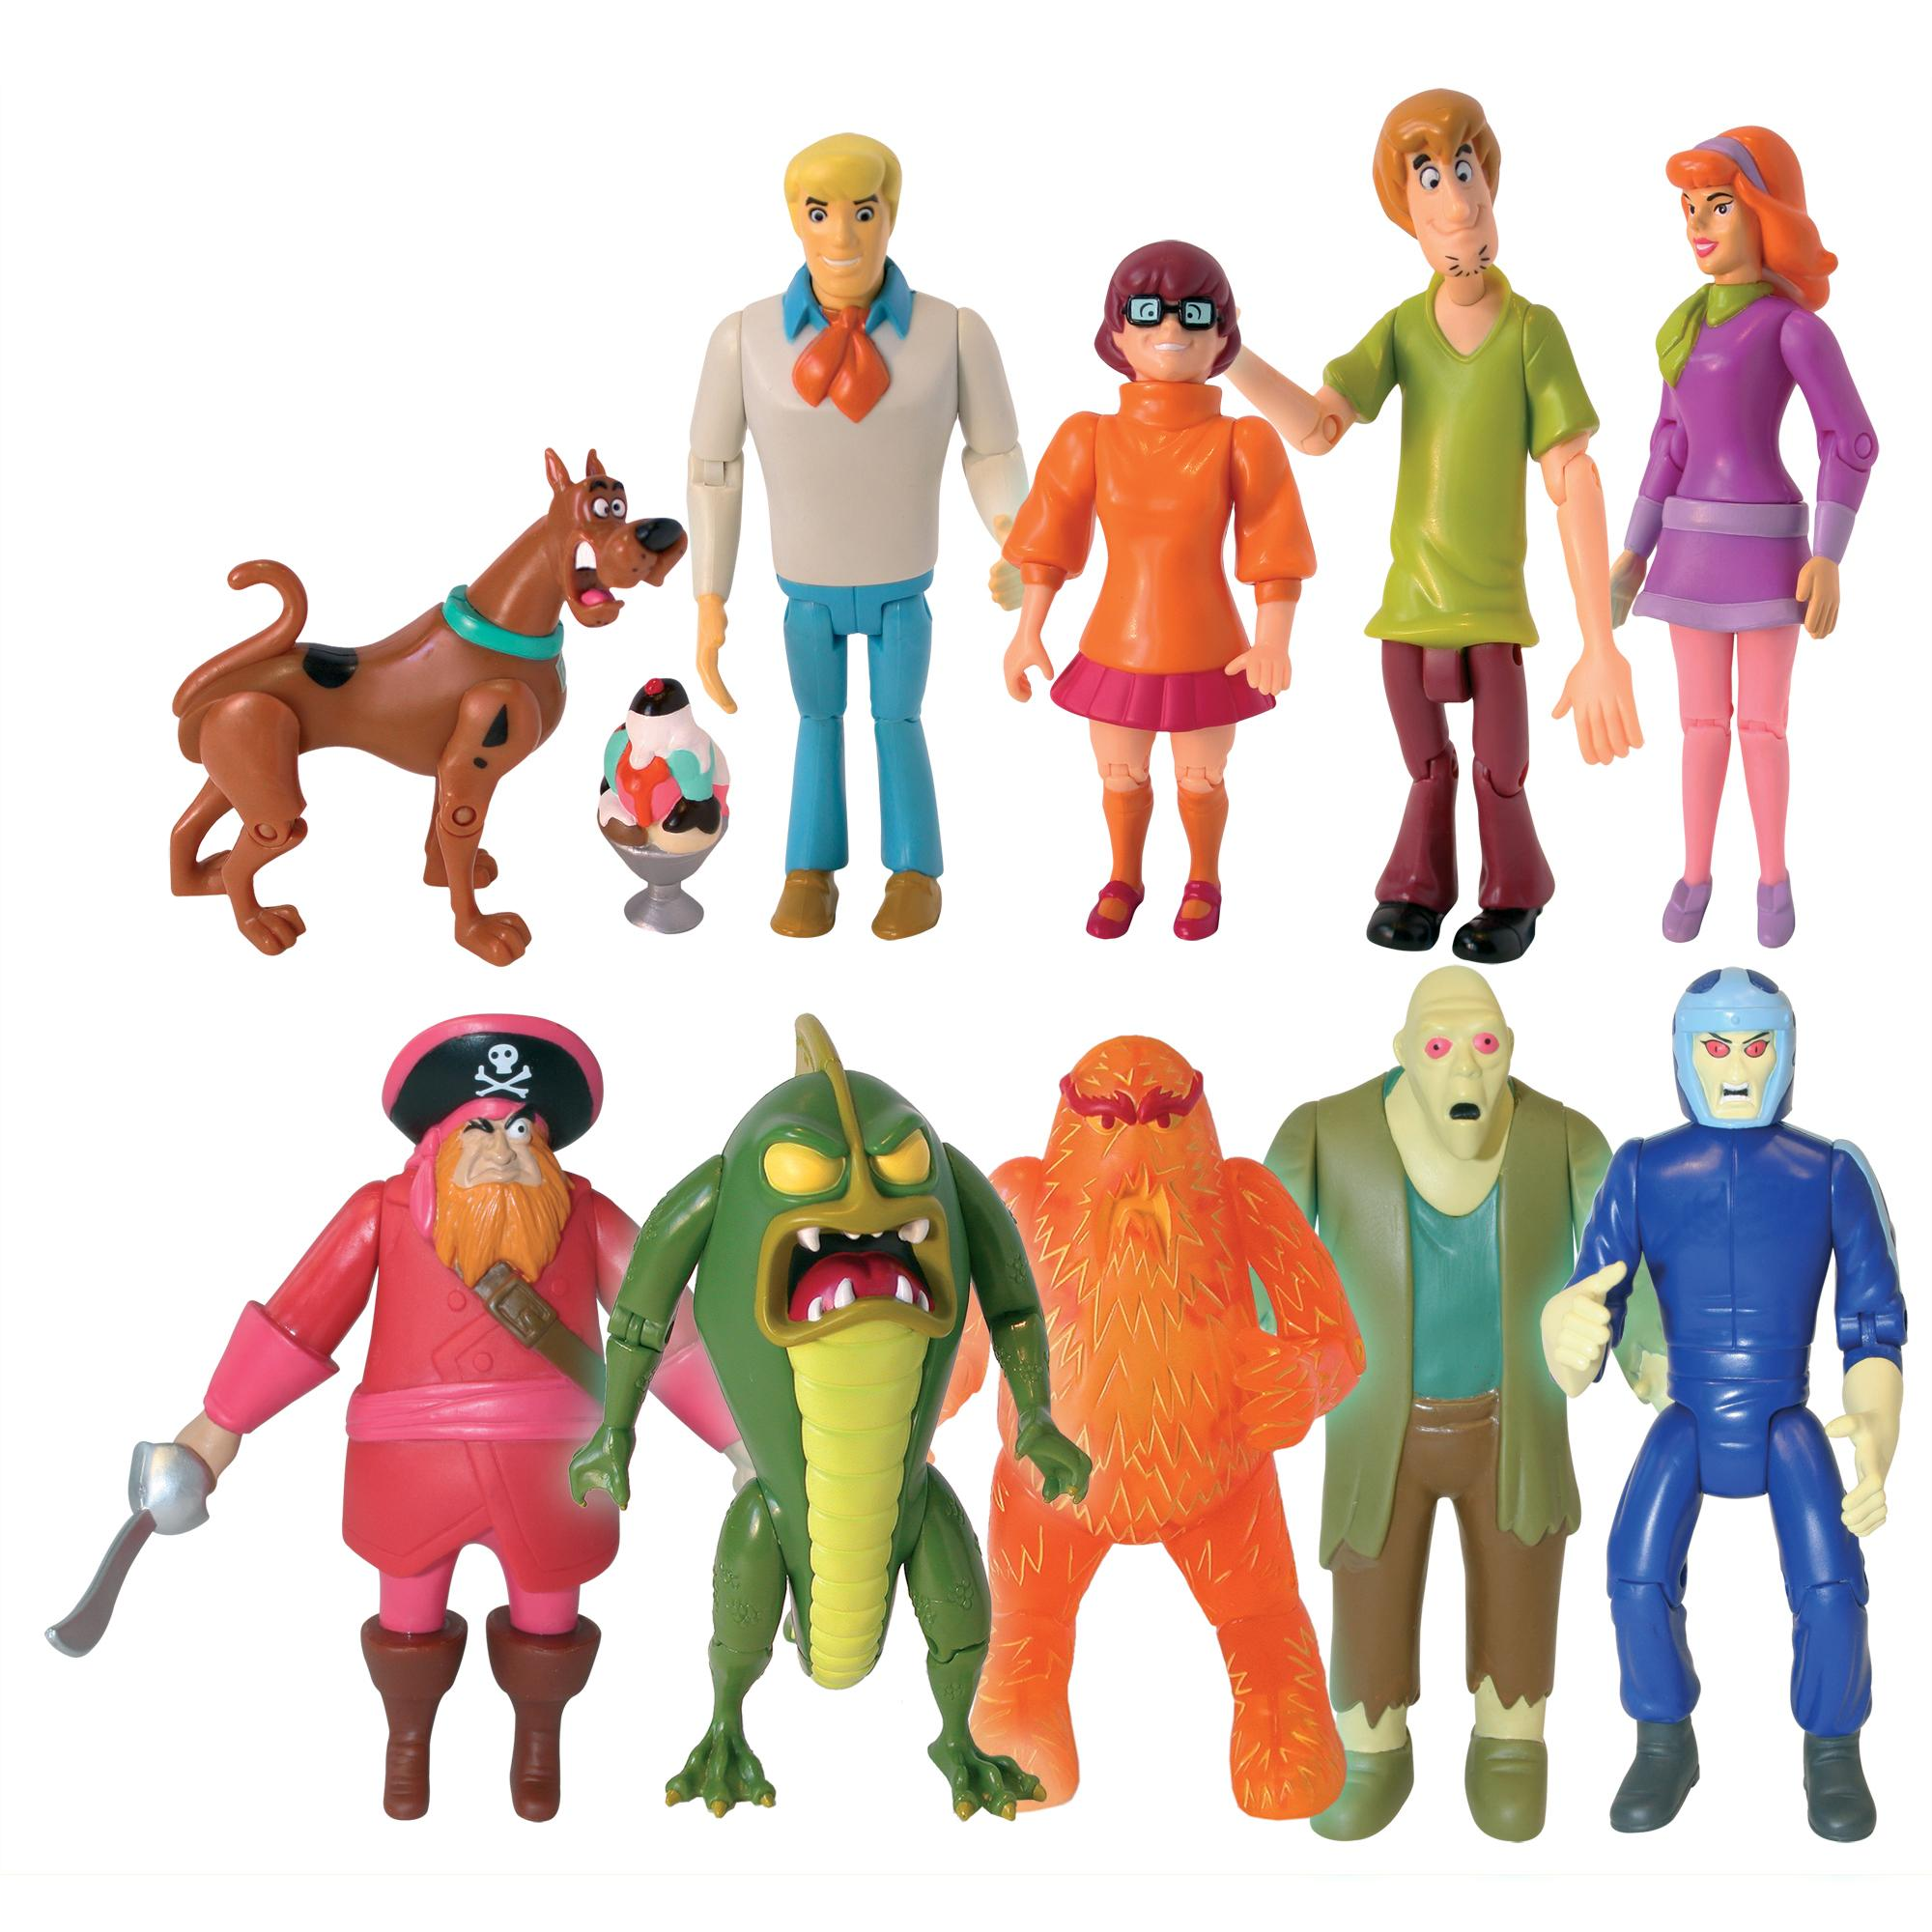 Amazon.com: Scooby Doo Monster Set Action Figure, 10 Pack